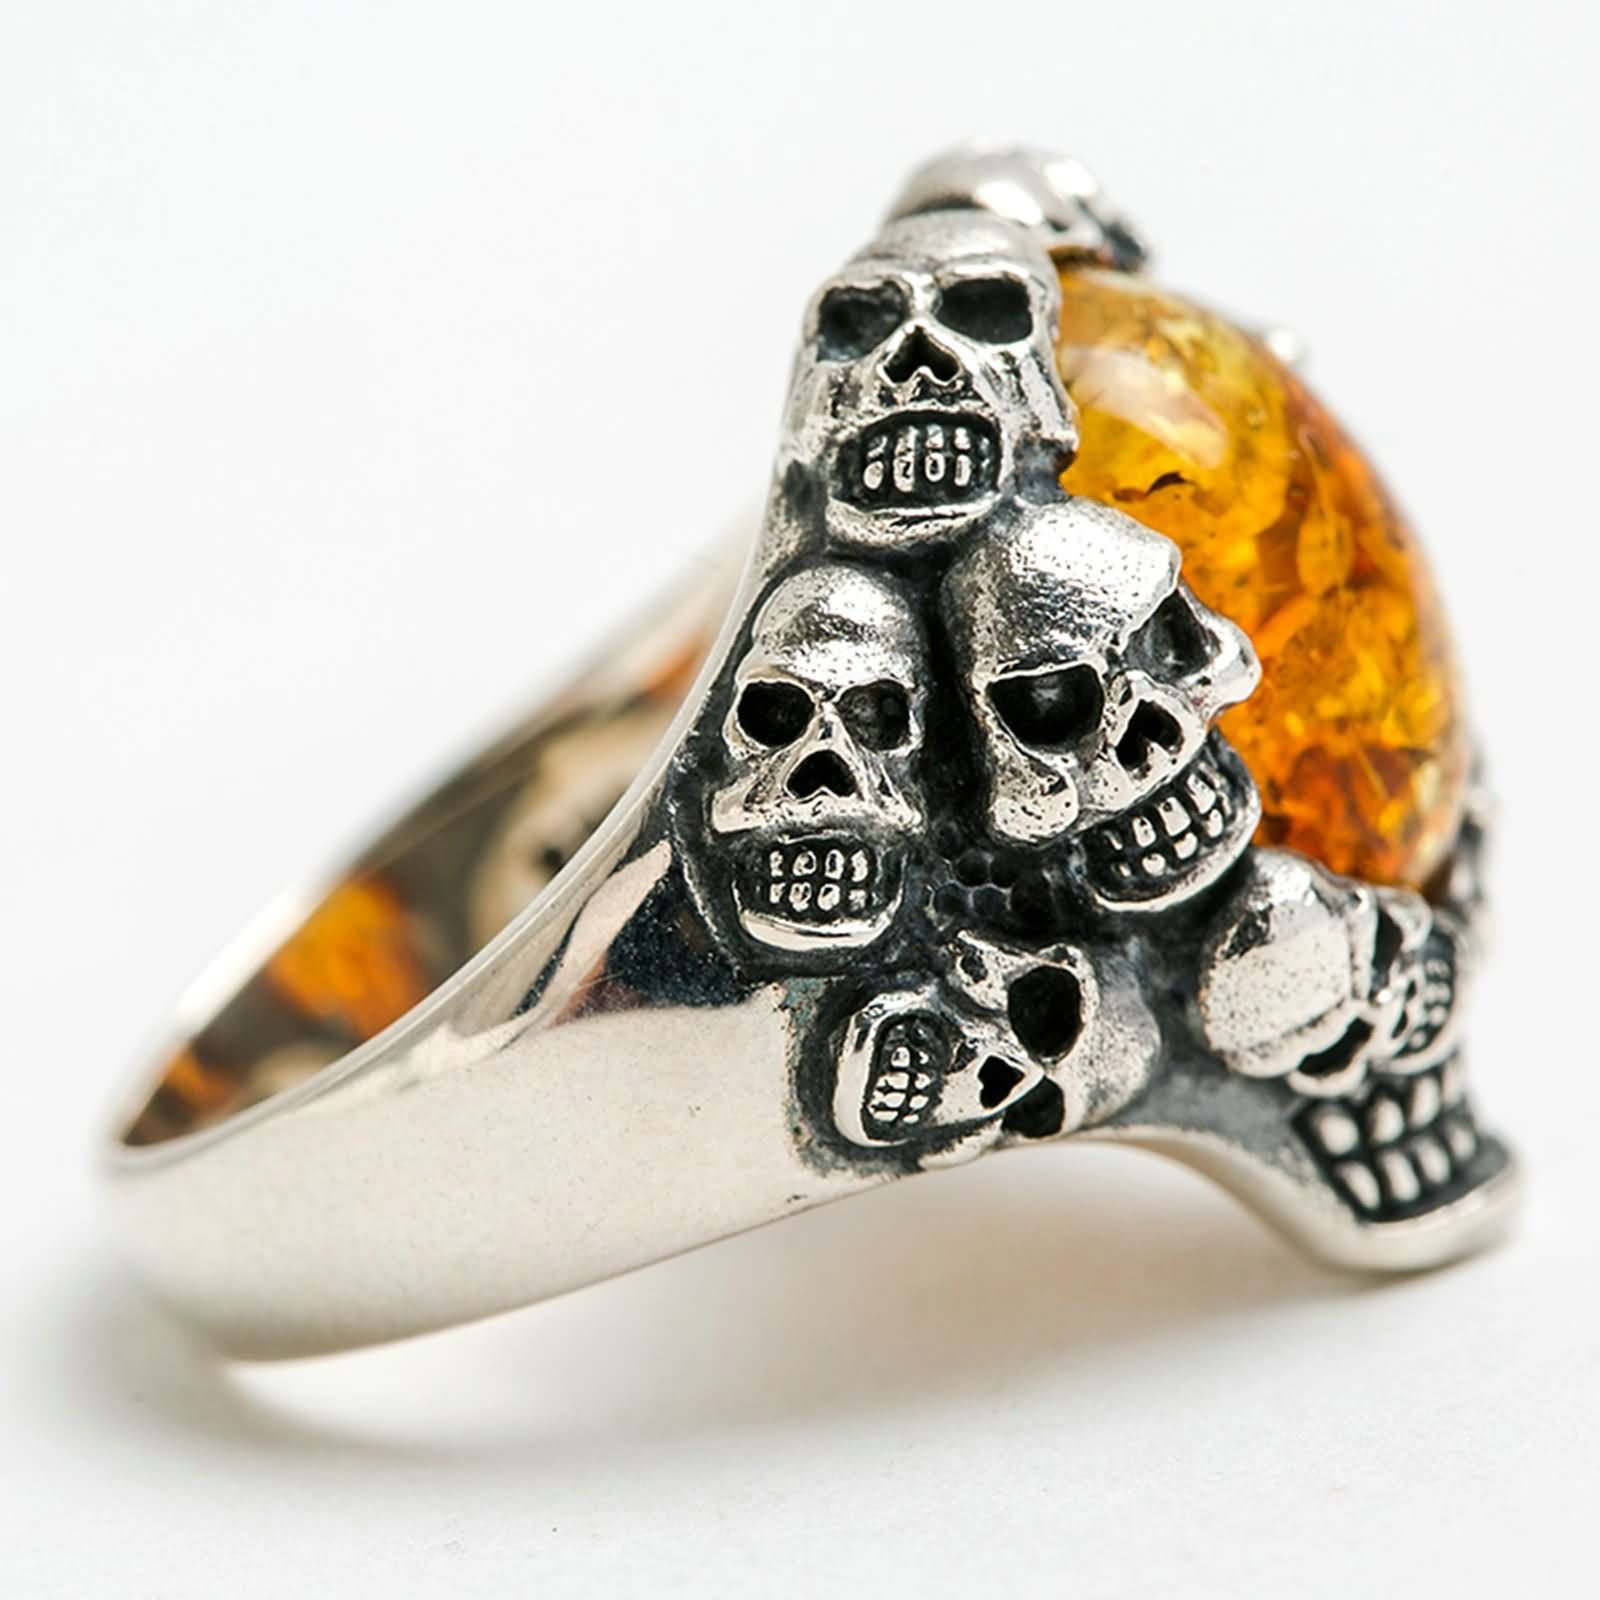 Bishilin Rings for Men Silver Plated Skull Oval Amber Friendship Rings Silver Size 12.5 by Bishilin (Image #3)